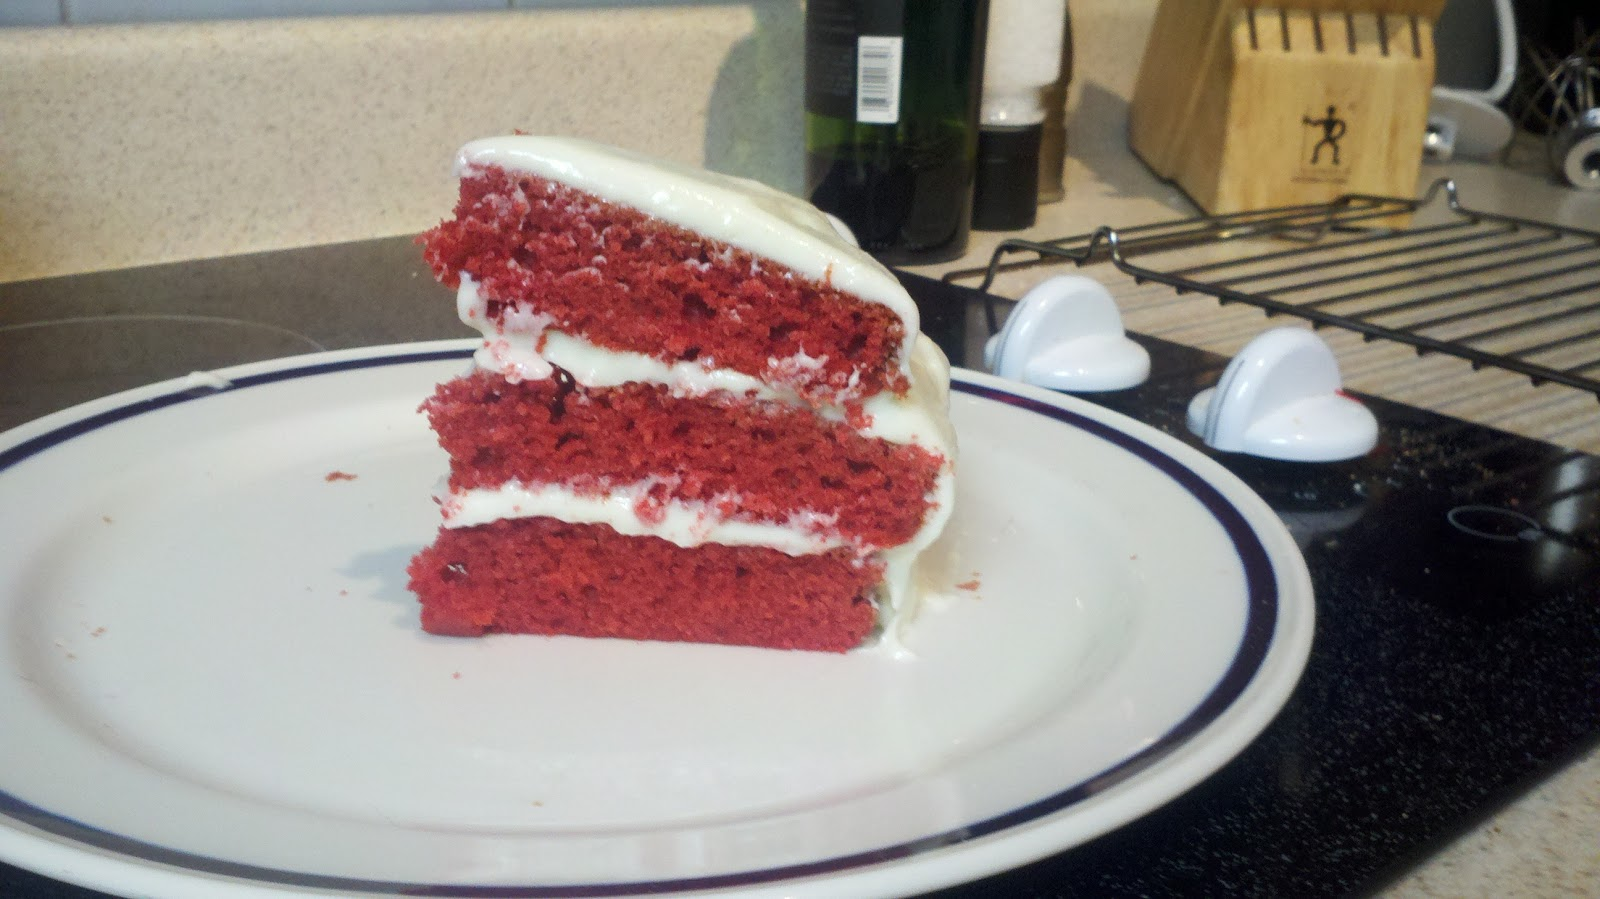 Http Www Foodnetwork Com Recipes Southern Red Velvet Cake Recipe